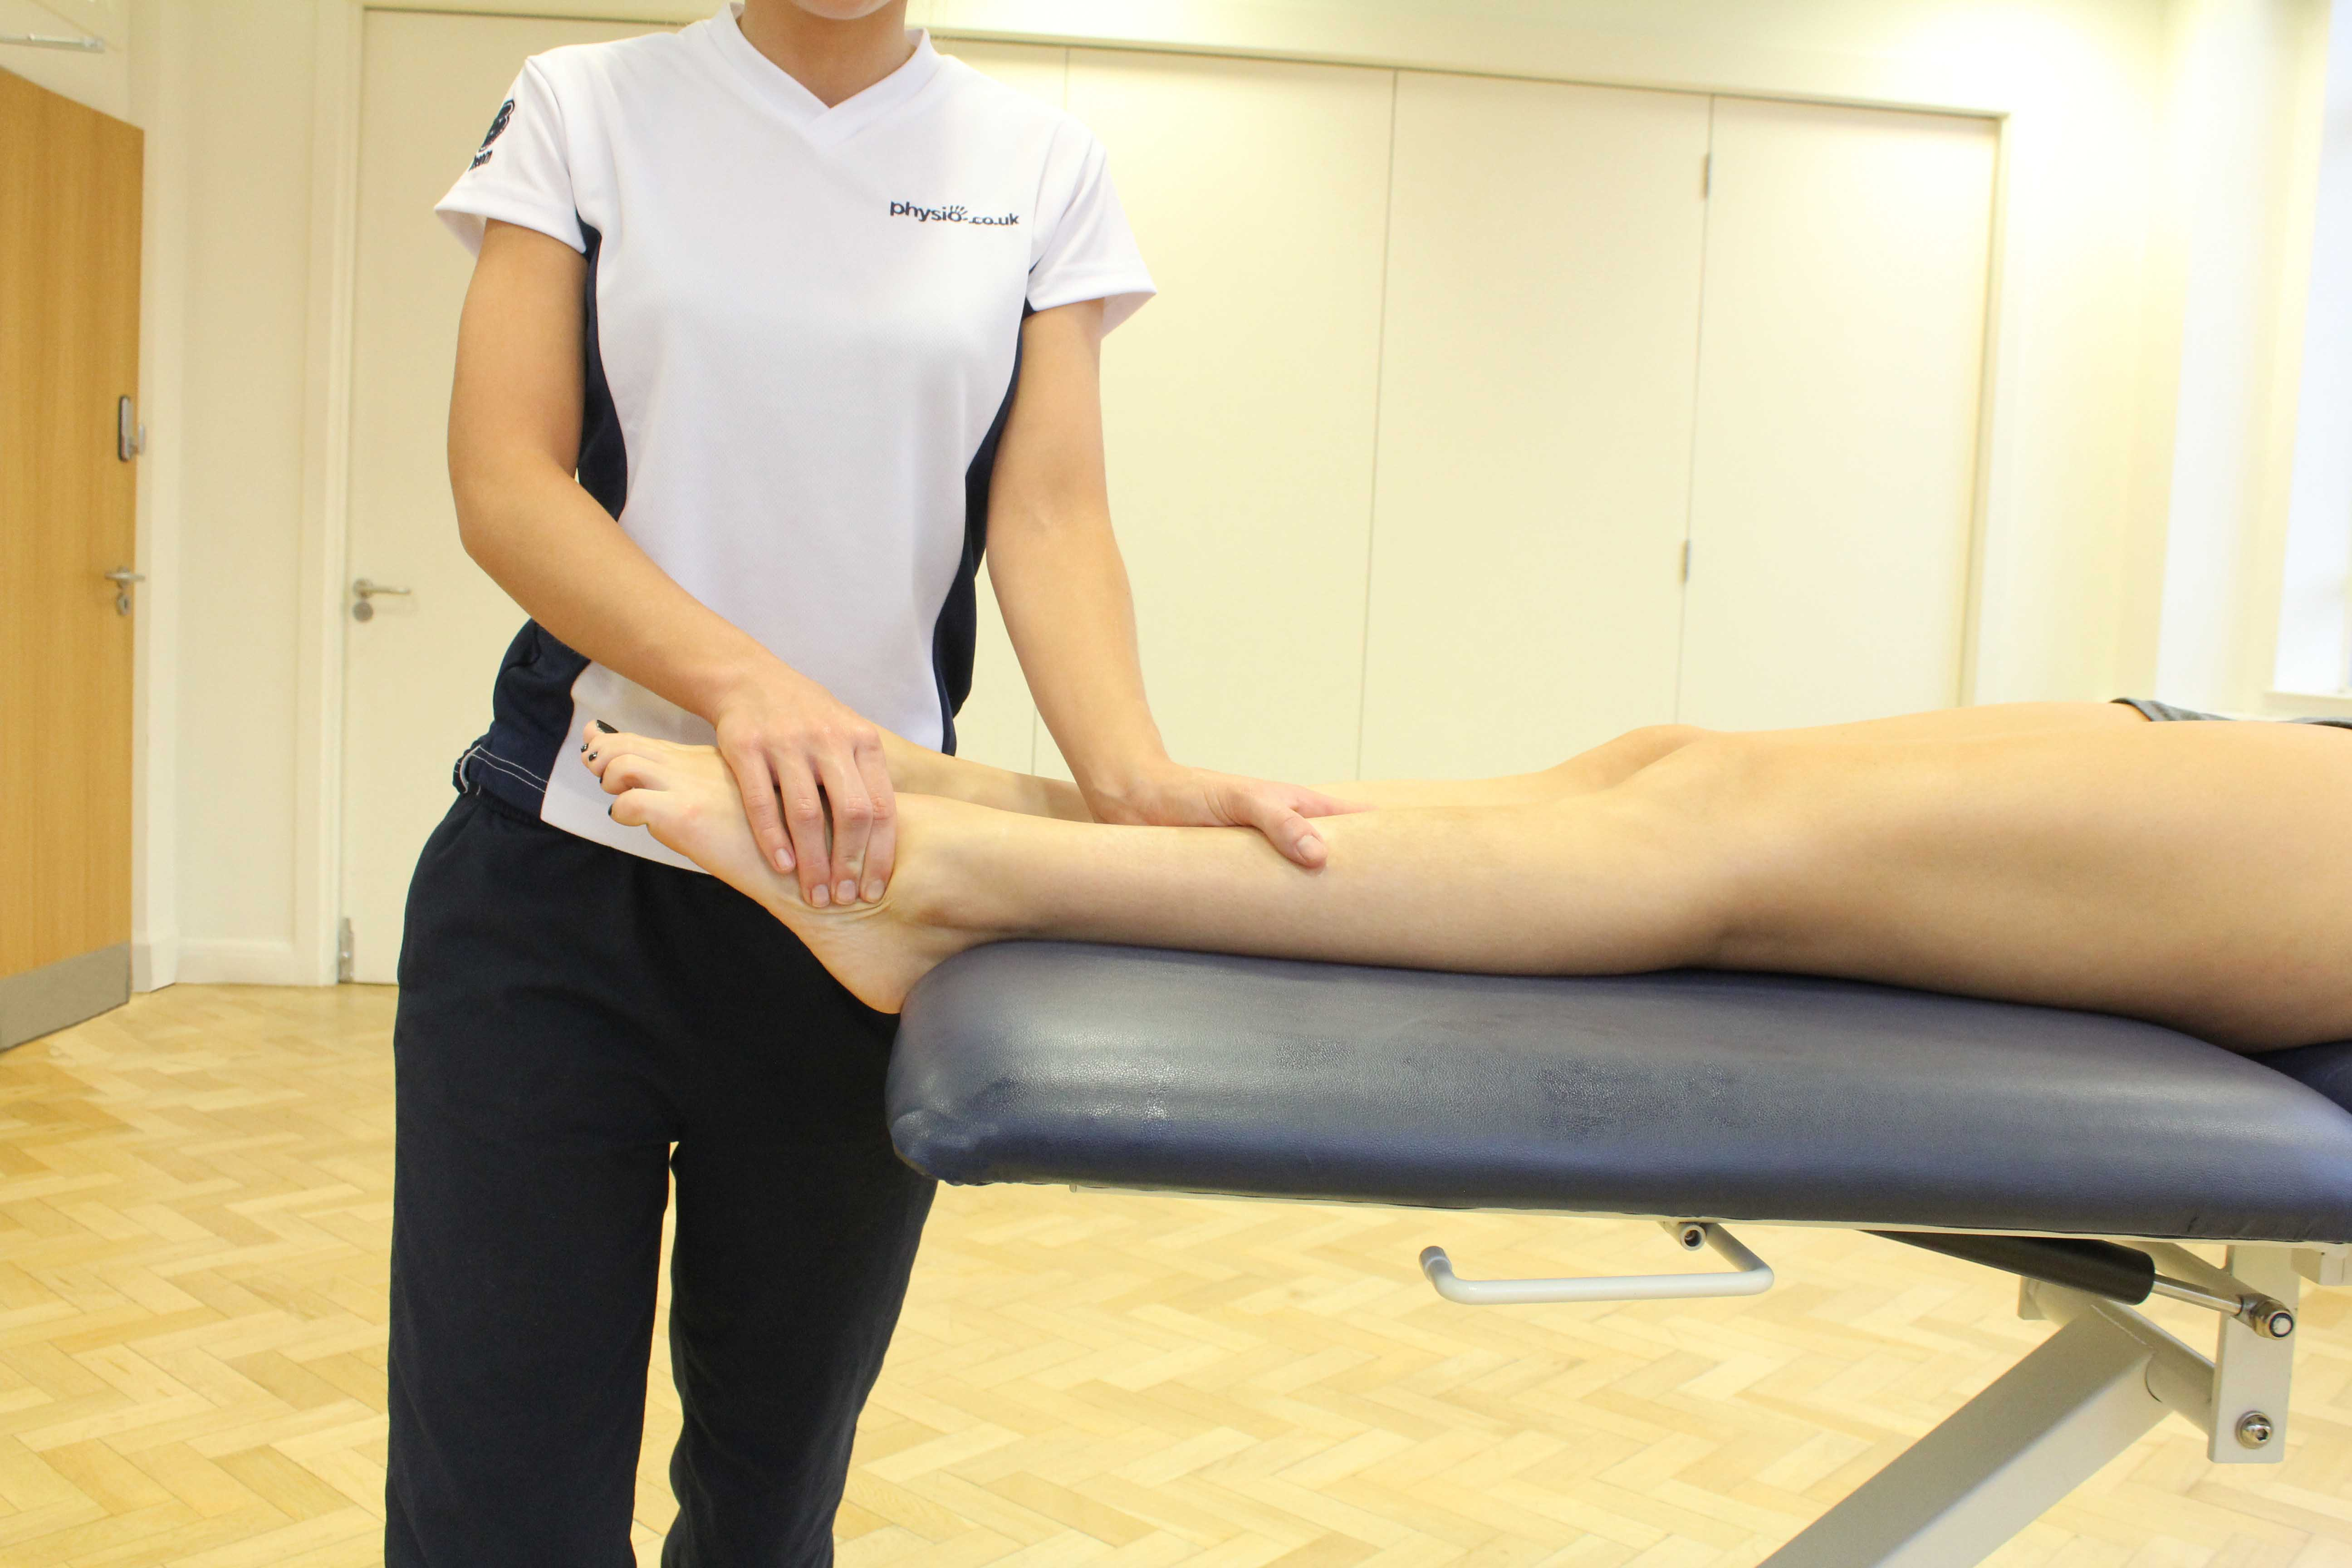 Active stretches of the foot and ankle performed under supervision by a specialist MSK physiotherapist